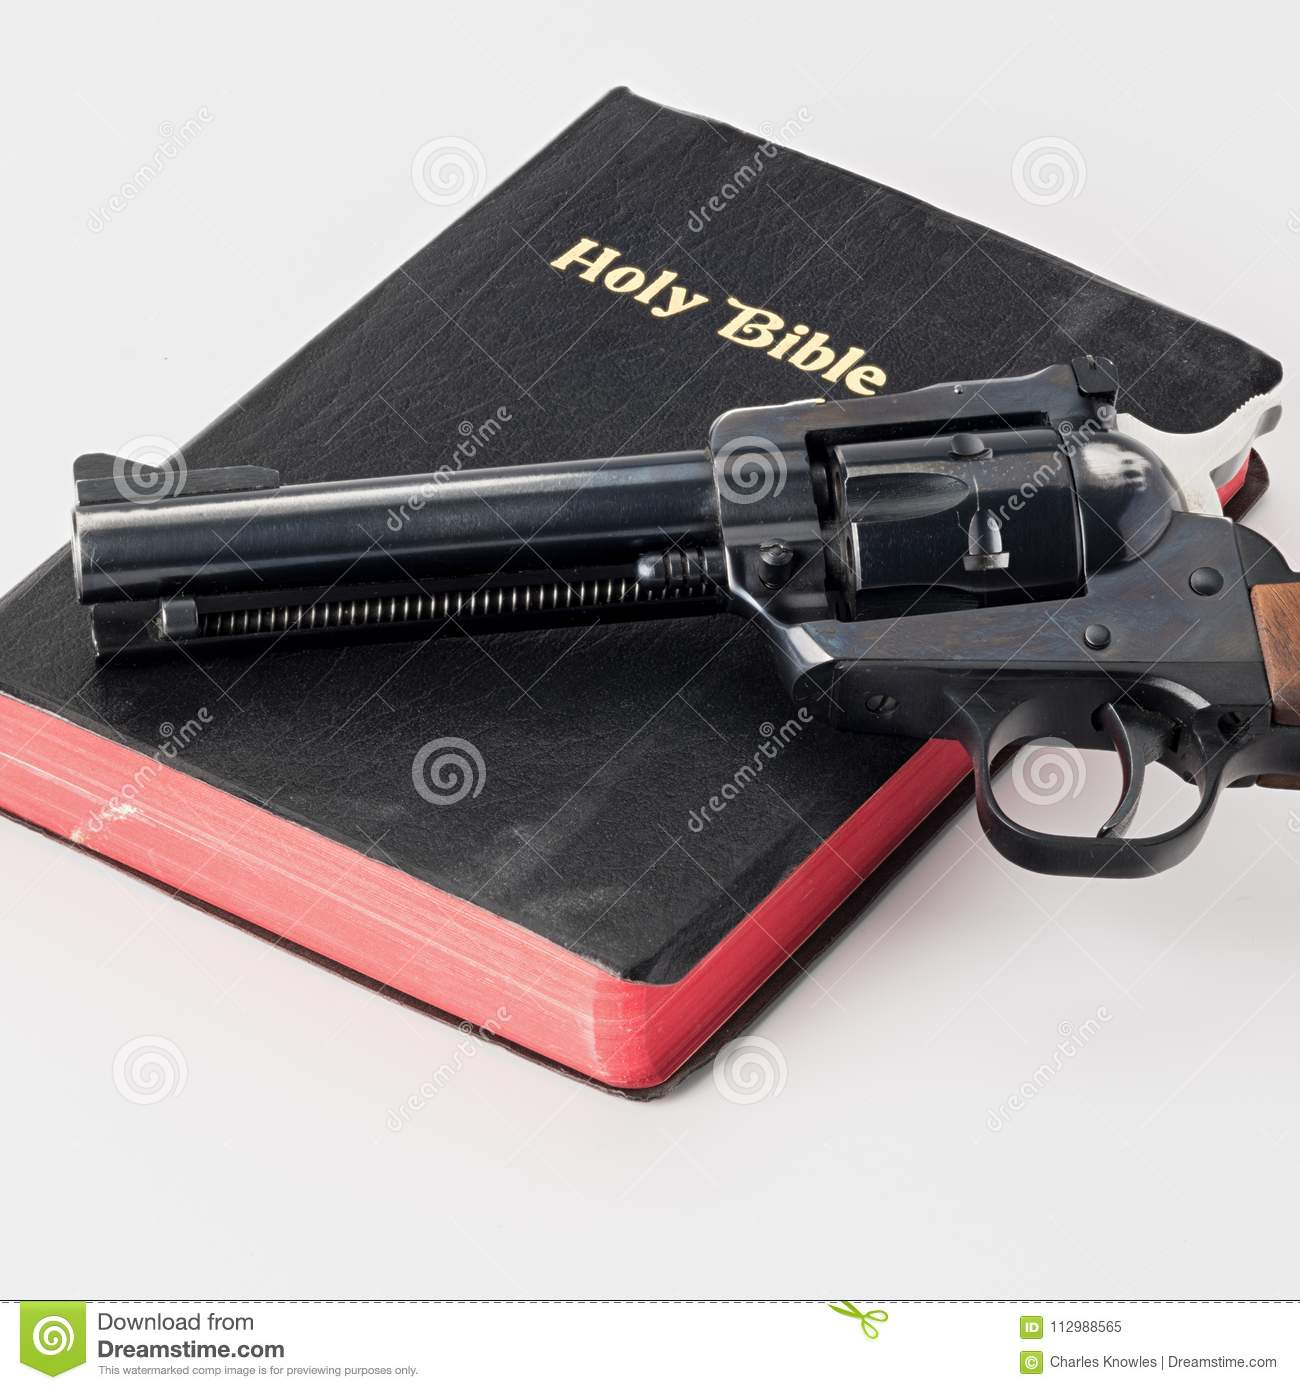 Hand gun on the top of an old Bible with red pages